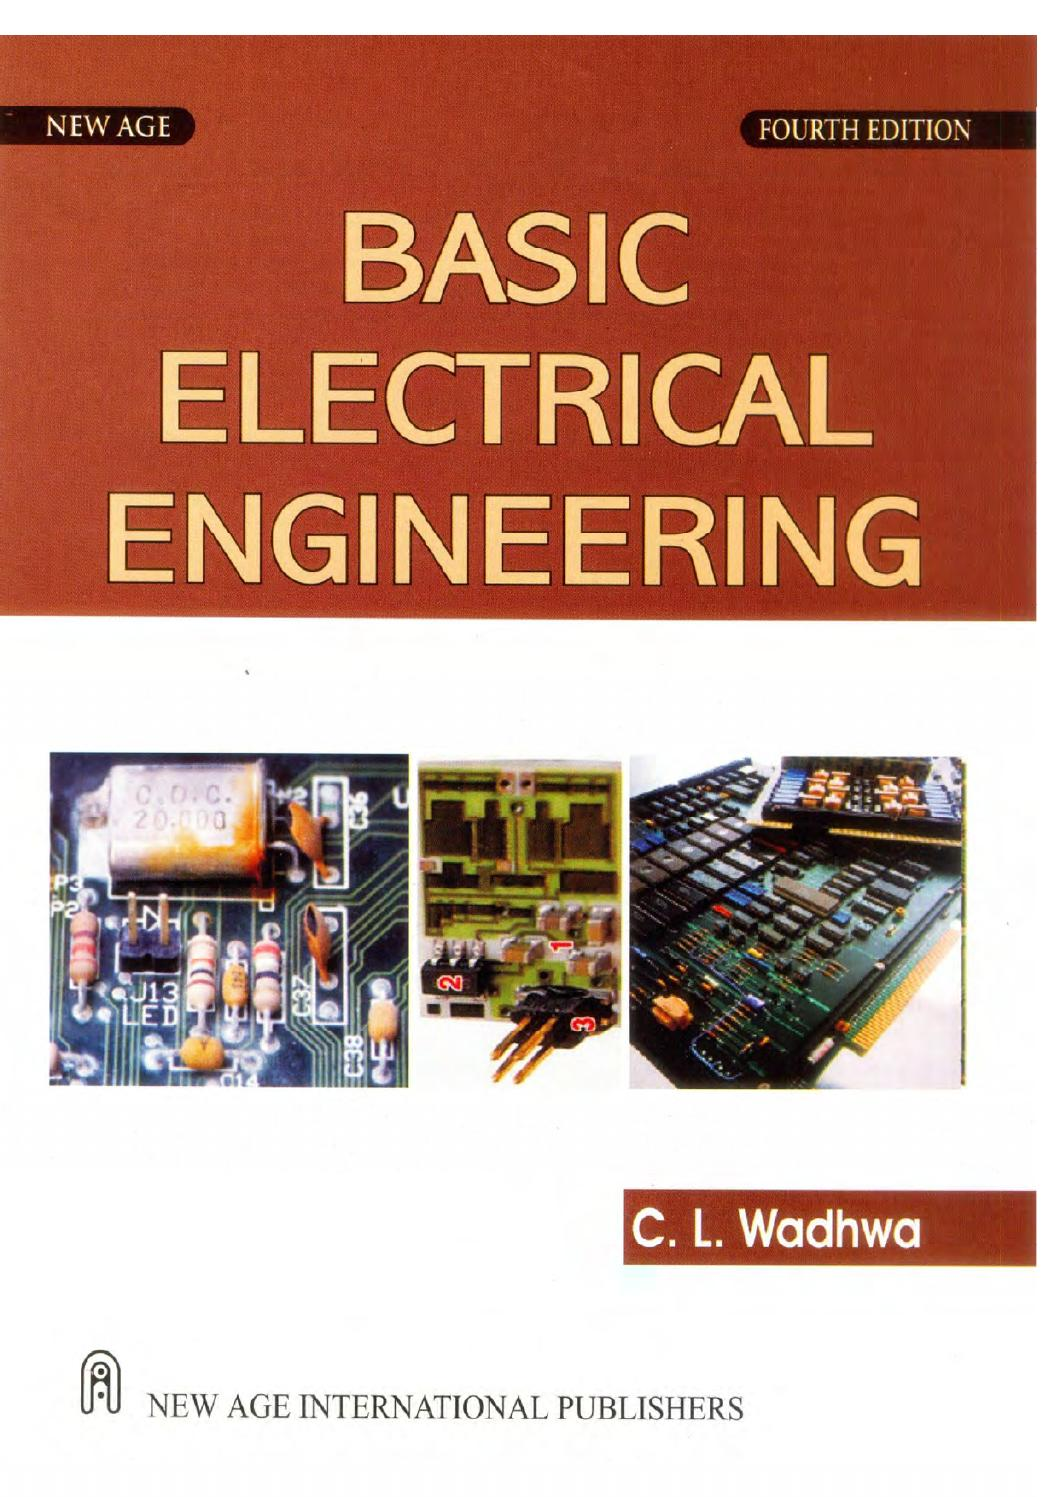 Basic Electrical Engineering 4th Edition By Vis Mechatronic Issuu Interactions Of A Circuitry With X Current And Voltage